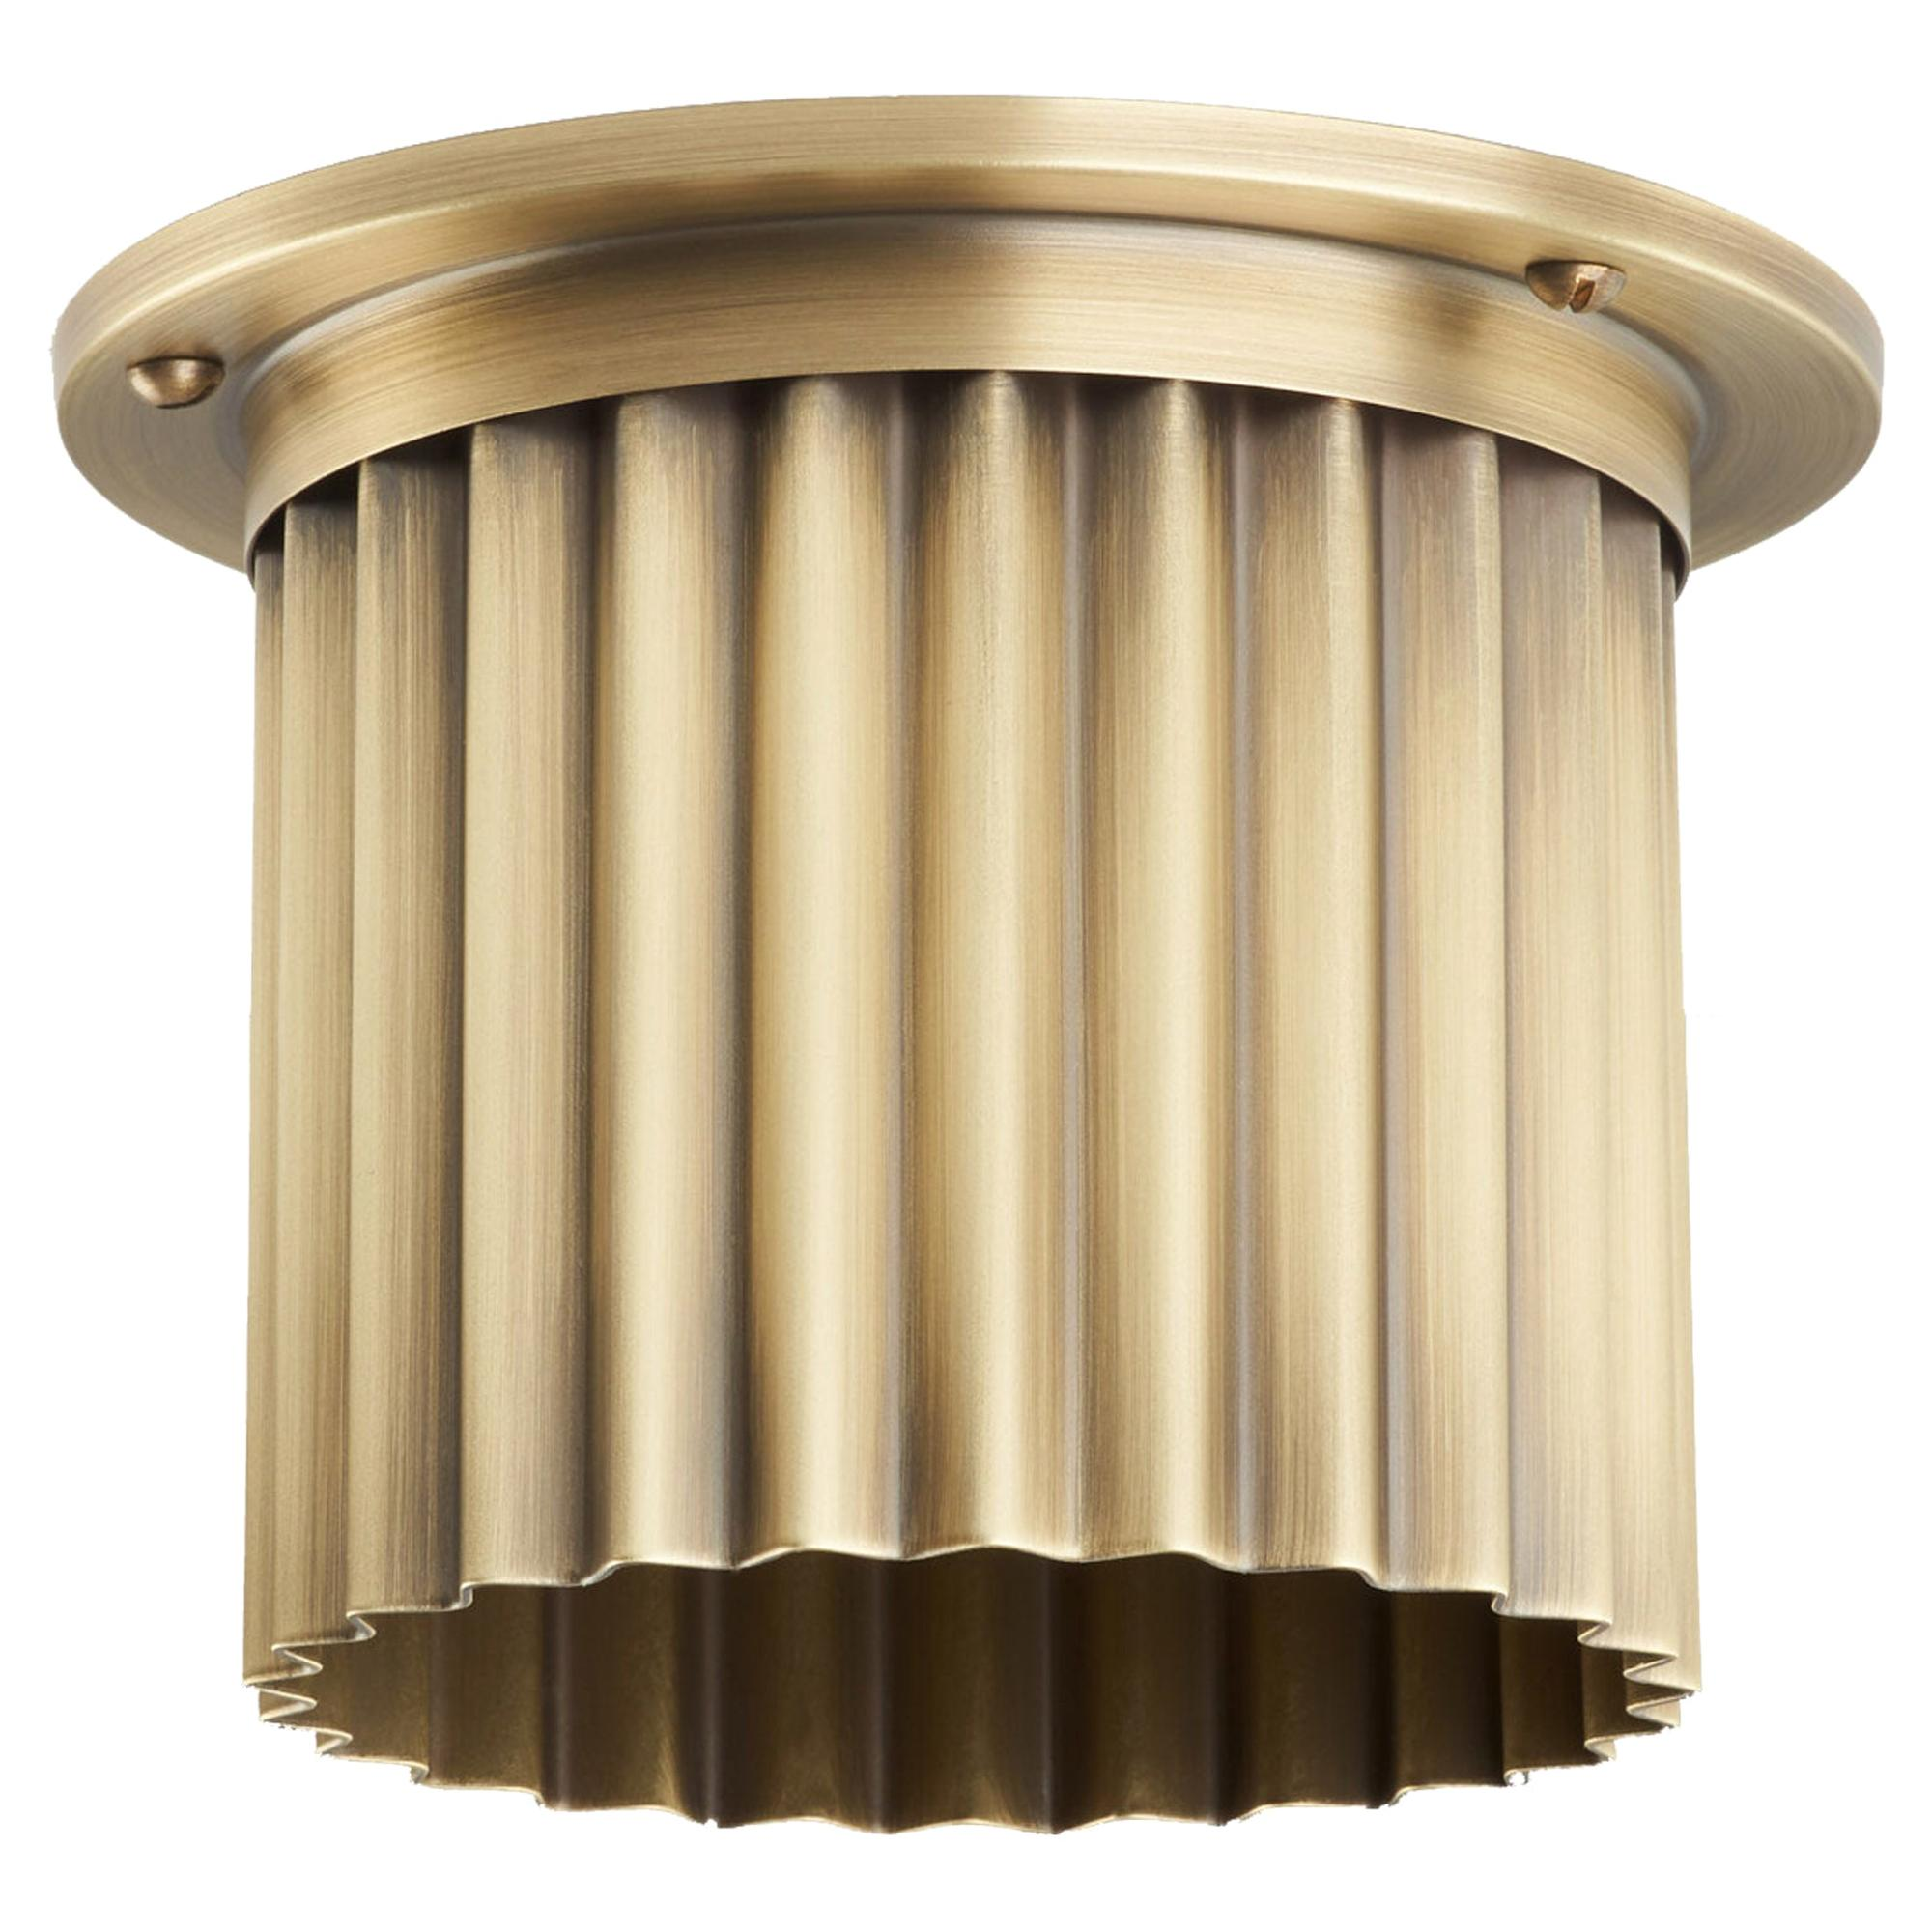 And Objects Littleton Spot Diffuser, Aged Brass Recessed Spot Light Shade